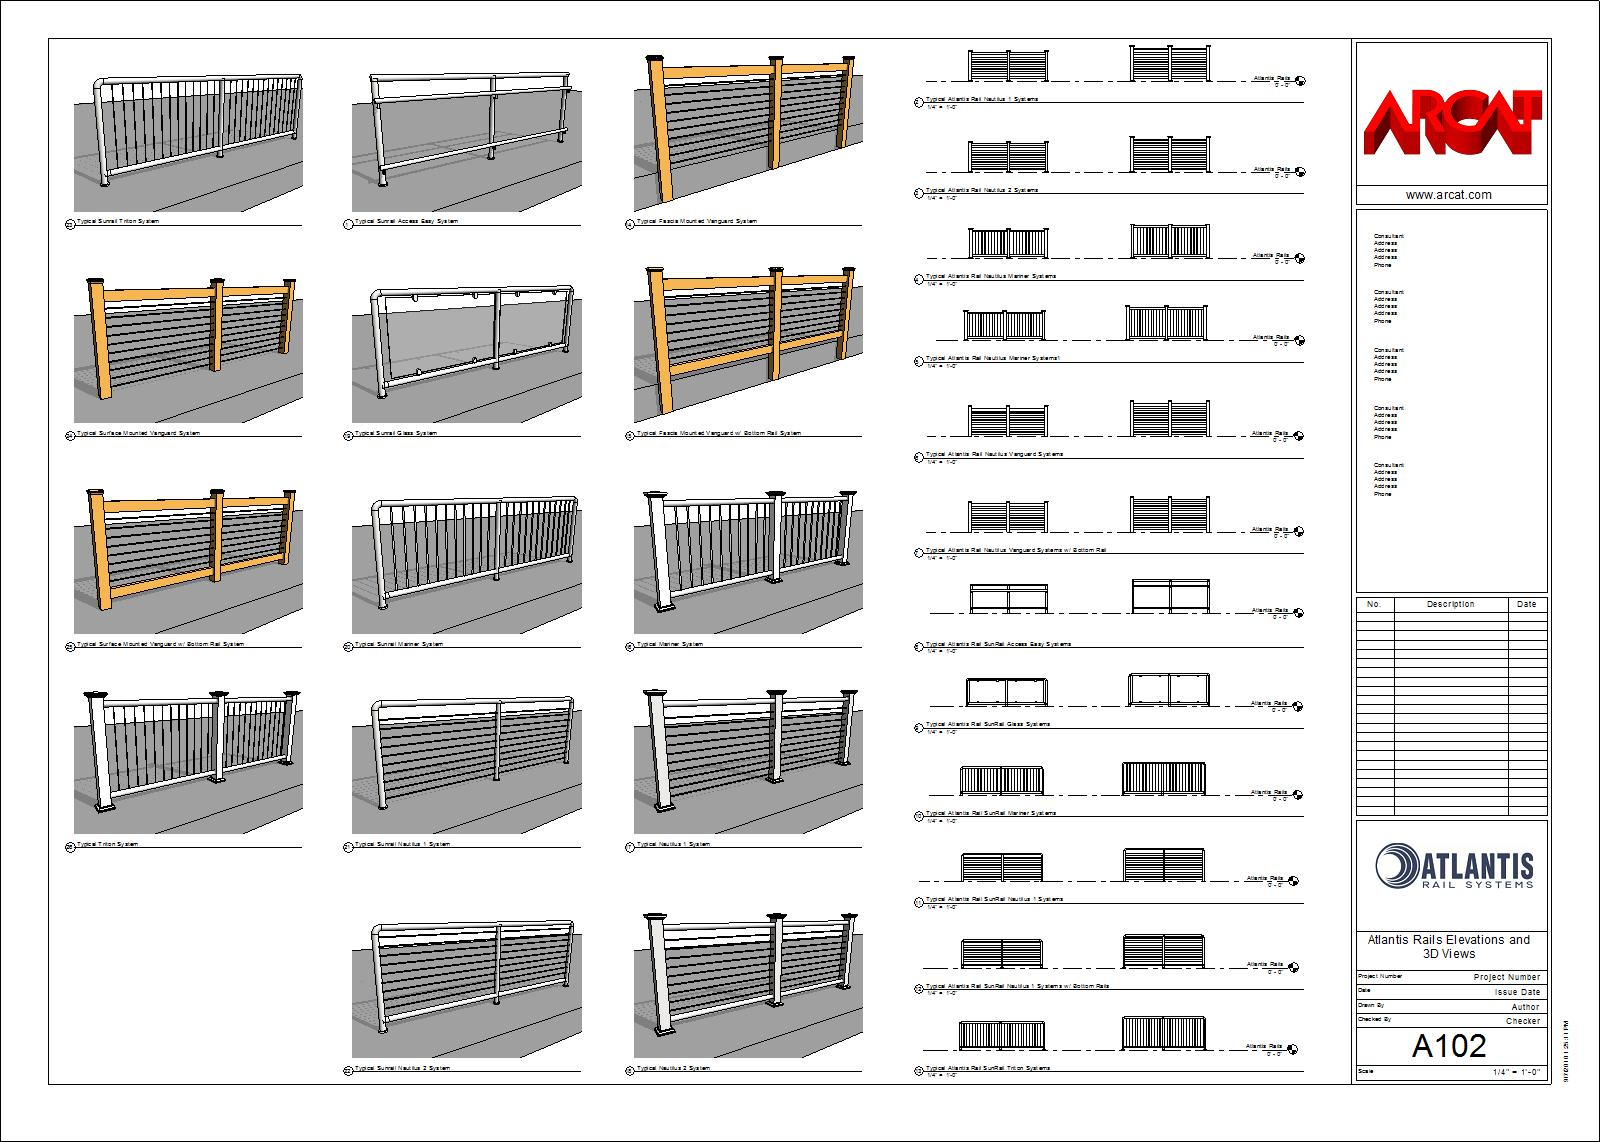 Decorative Metal Railings - Metals - Free BIM Objects